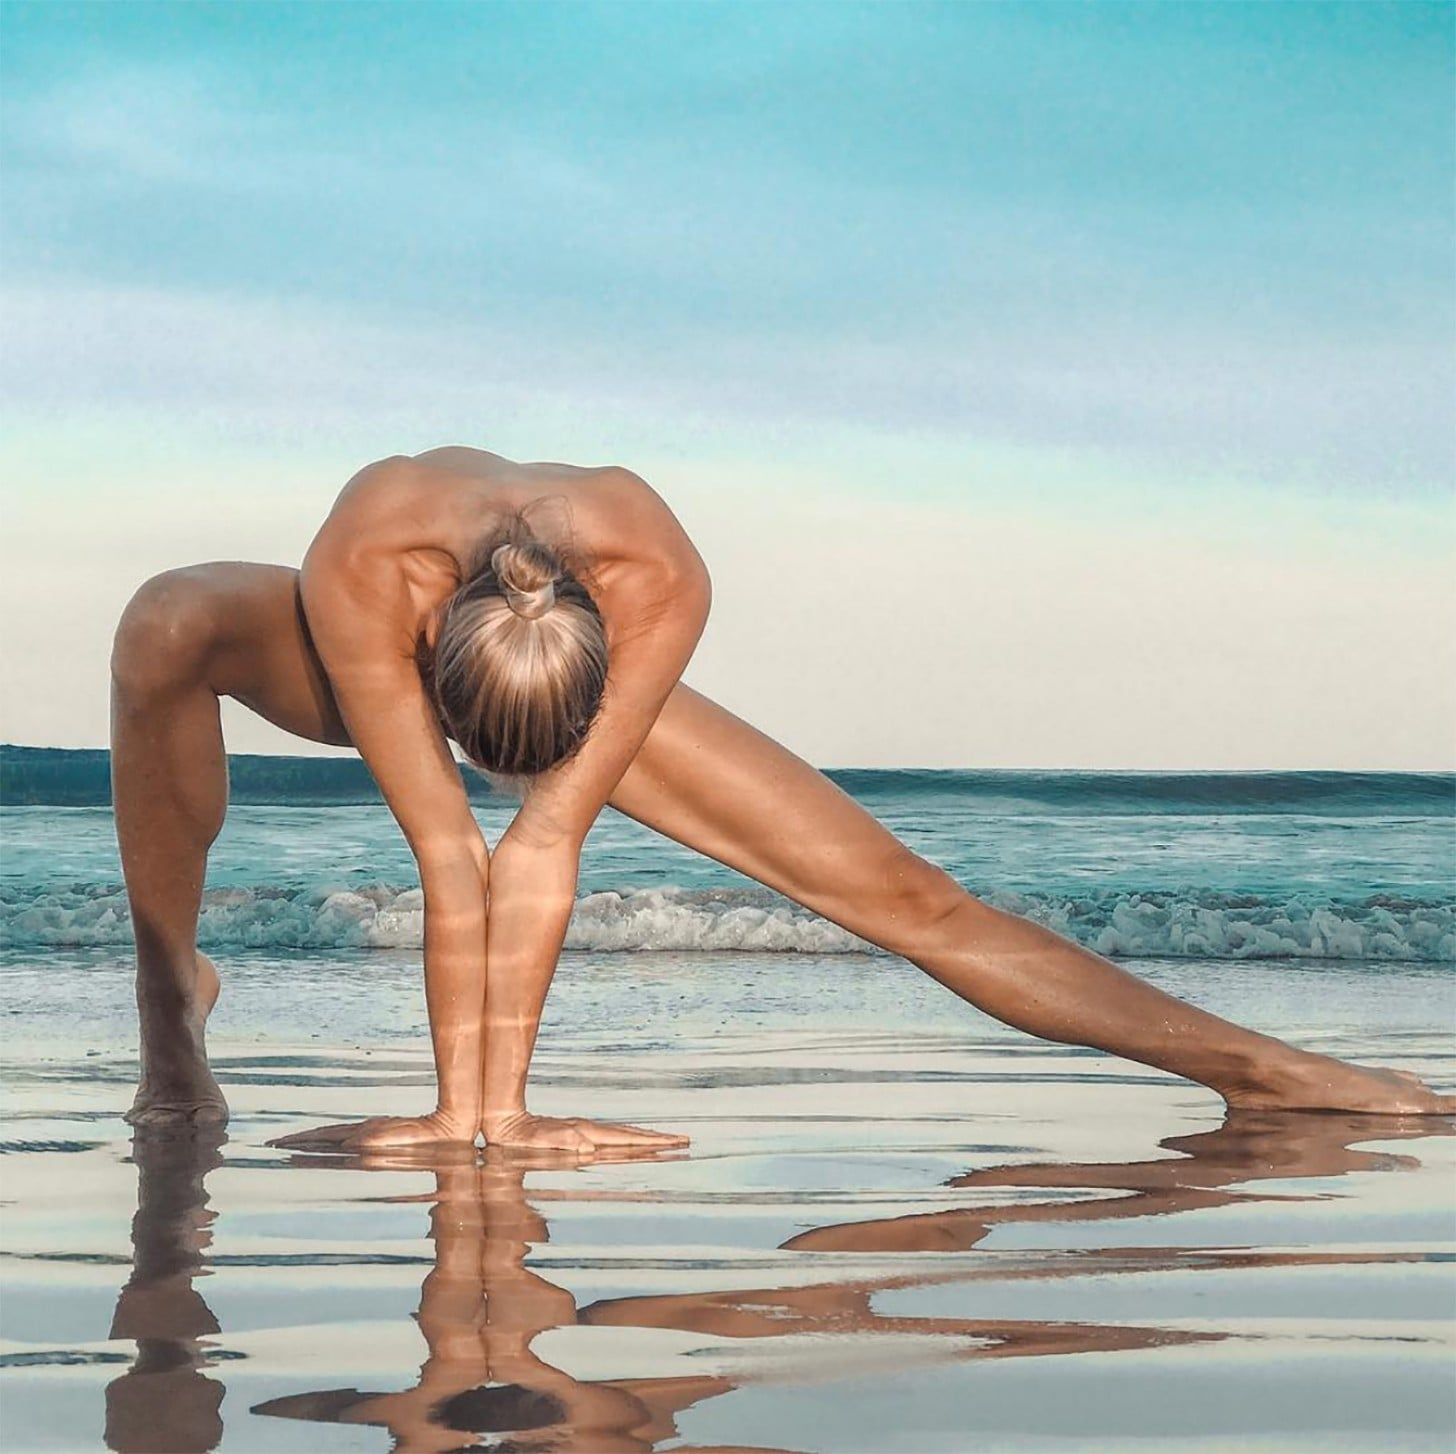 Naked Yoga on the Beach